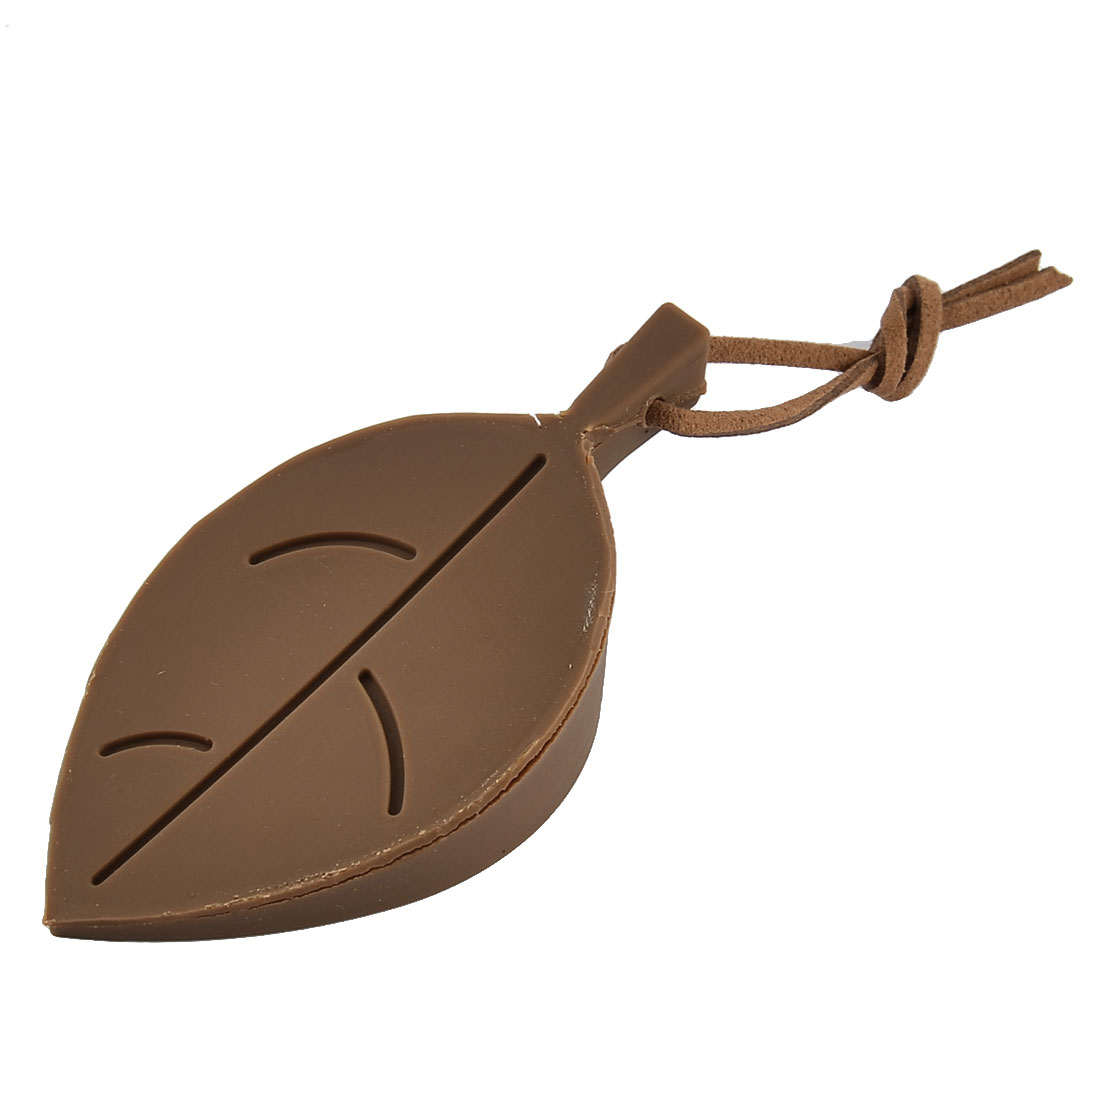 Home Office Leaf Style Flexible Silicone Finger Guard Door Stopper Coffee Color